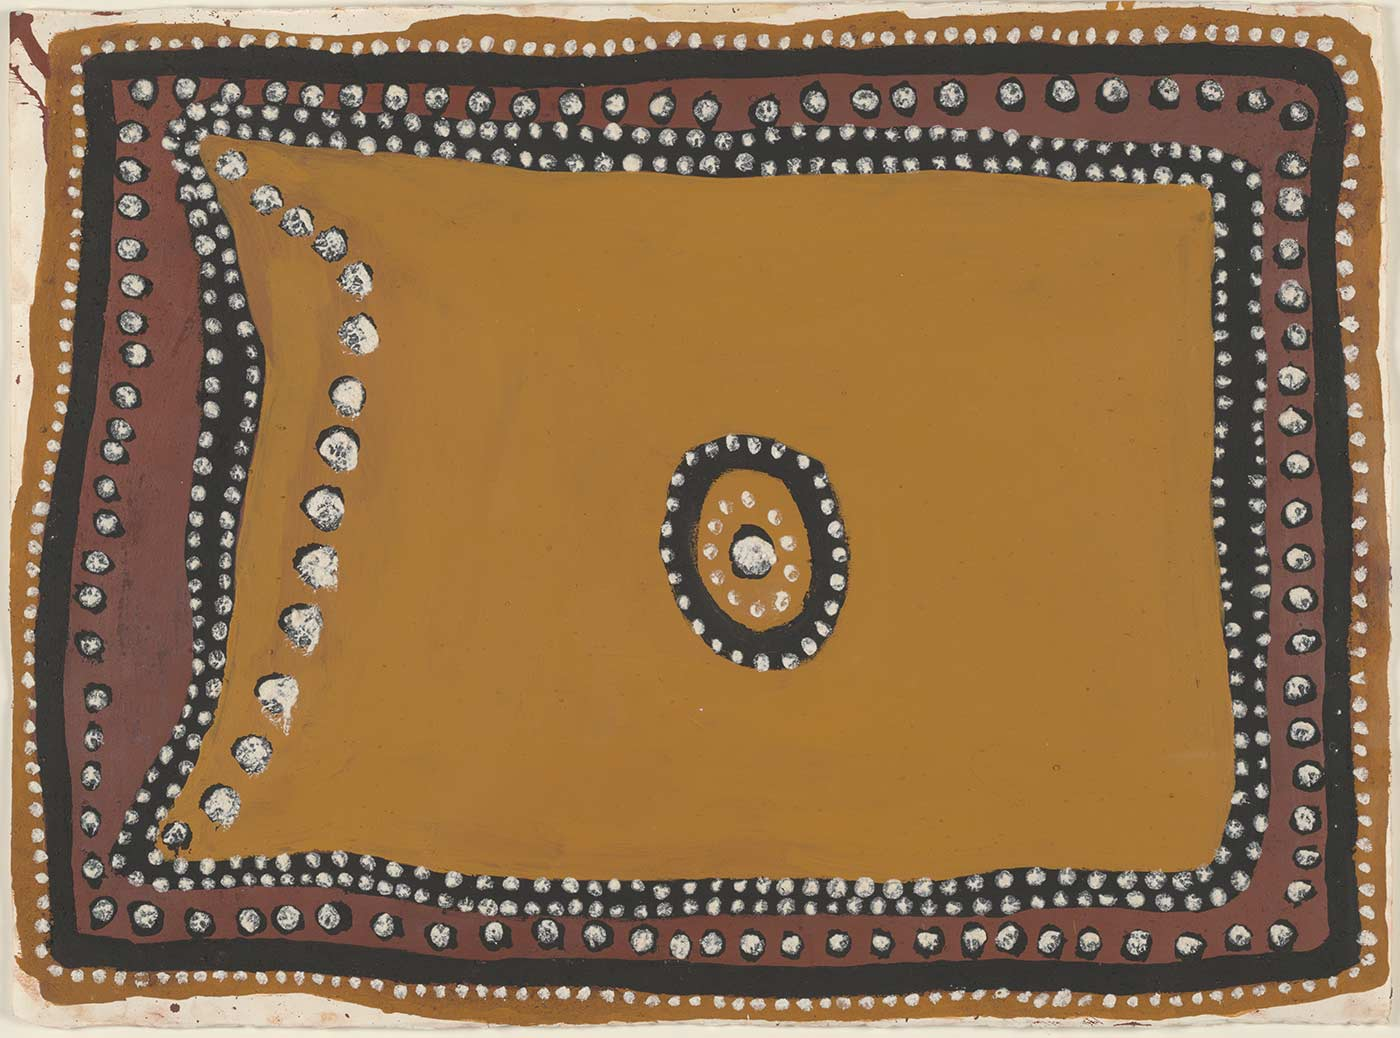 A painting on heavy mat paper. It appears to be painted in ochre and features ochre yellow as the main background colour with a black and red border that has white dots on it. The centre of the painting shows a black circle with white dots around it. Inside the black circle is another ring of white dots and at the very centre is one large black dot with a white dot on top of it. The left hand side of the painting shows a curved vertical line of large black dots with large white dots over them.